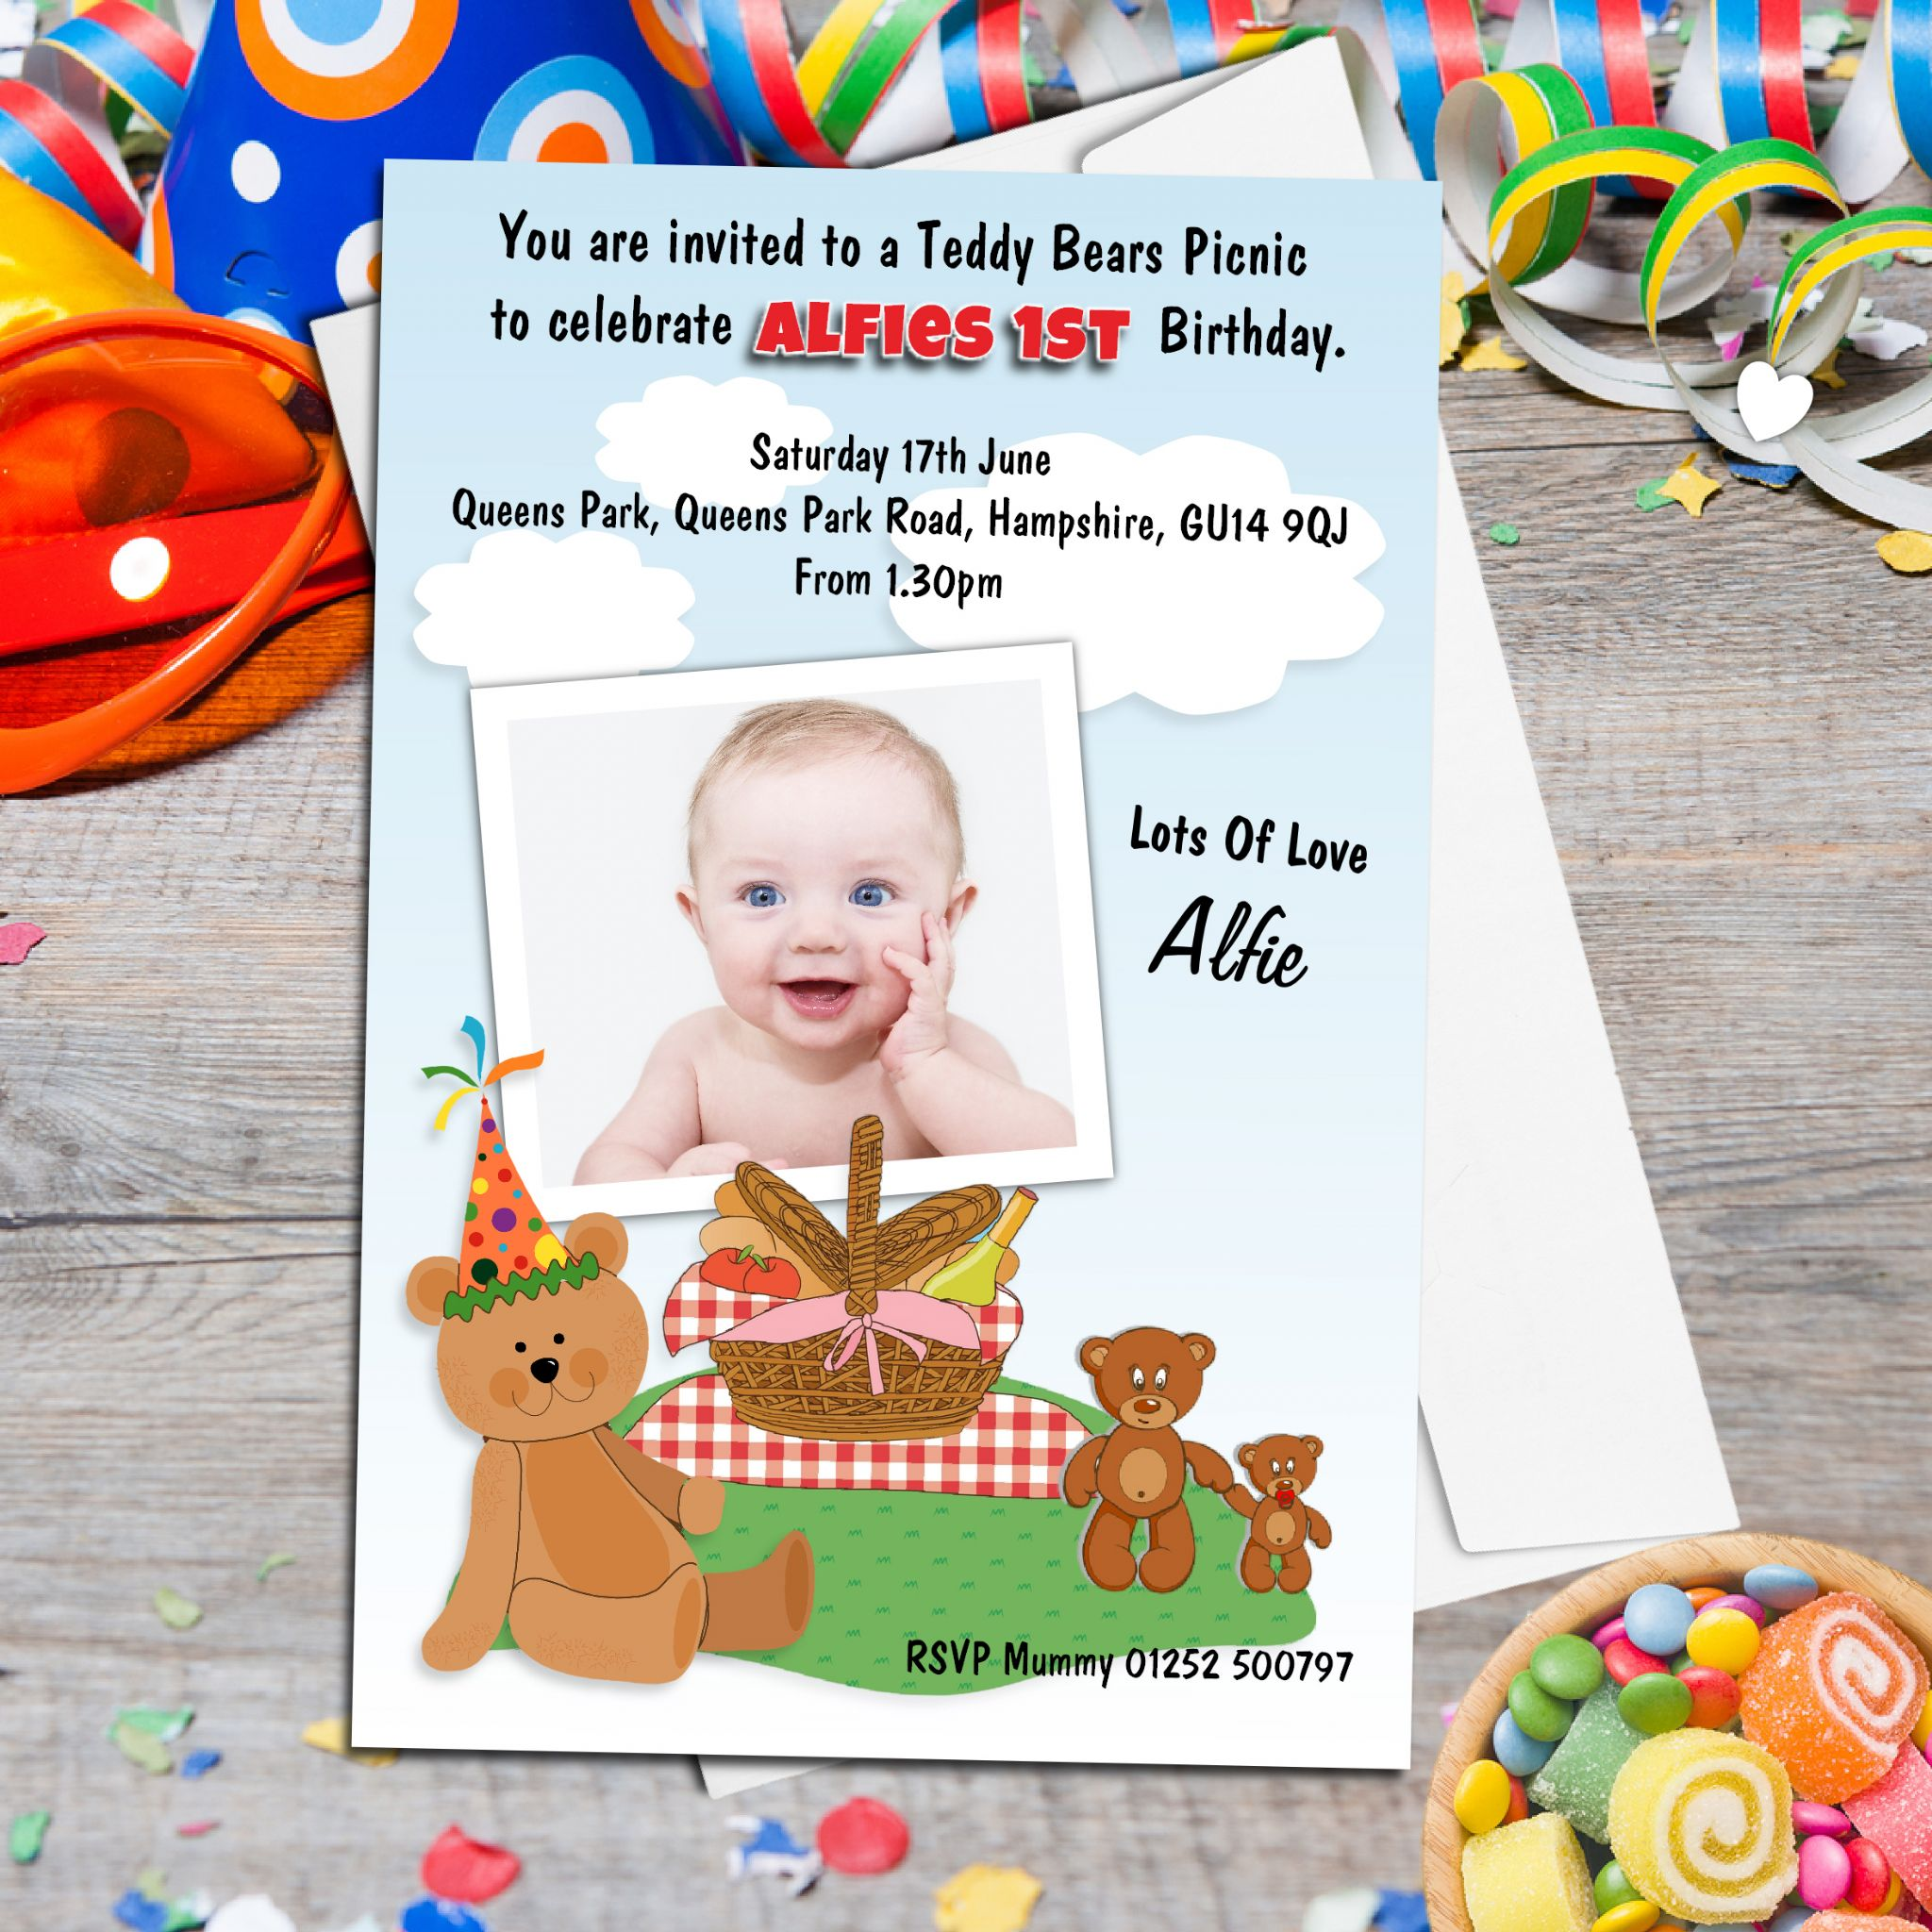 10 Personalised Teddy Bears Picnic Birthday Party PHOTO Invitations N102